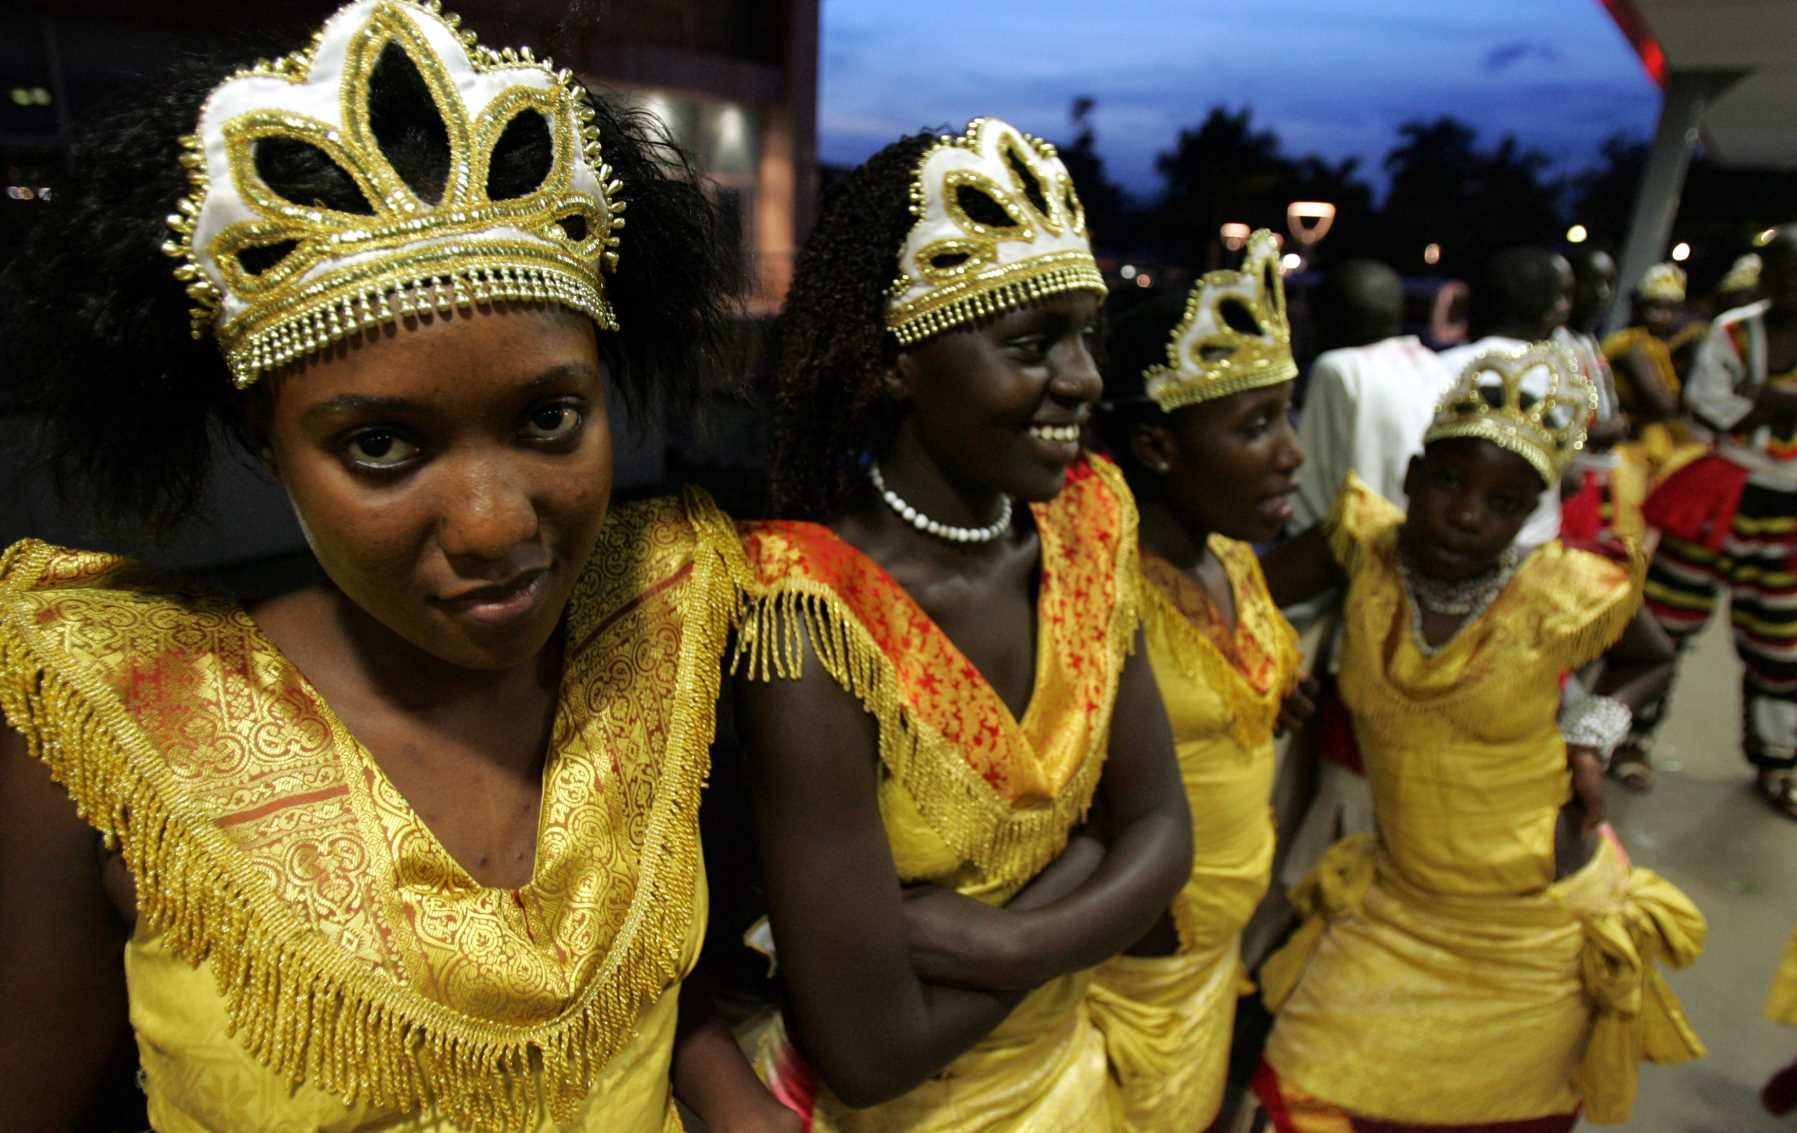 damas-de-honor-en-boda-kampala-uganda-getty